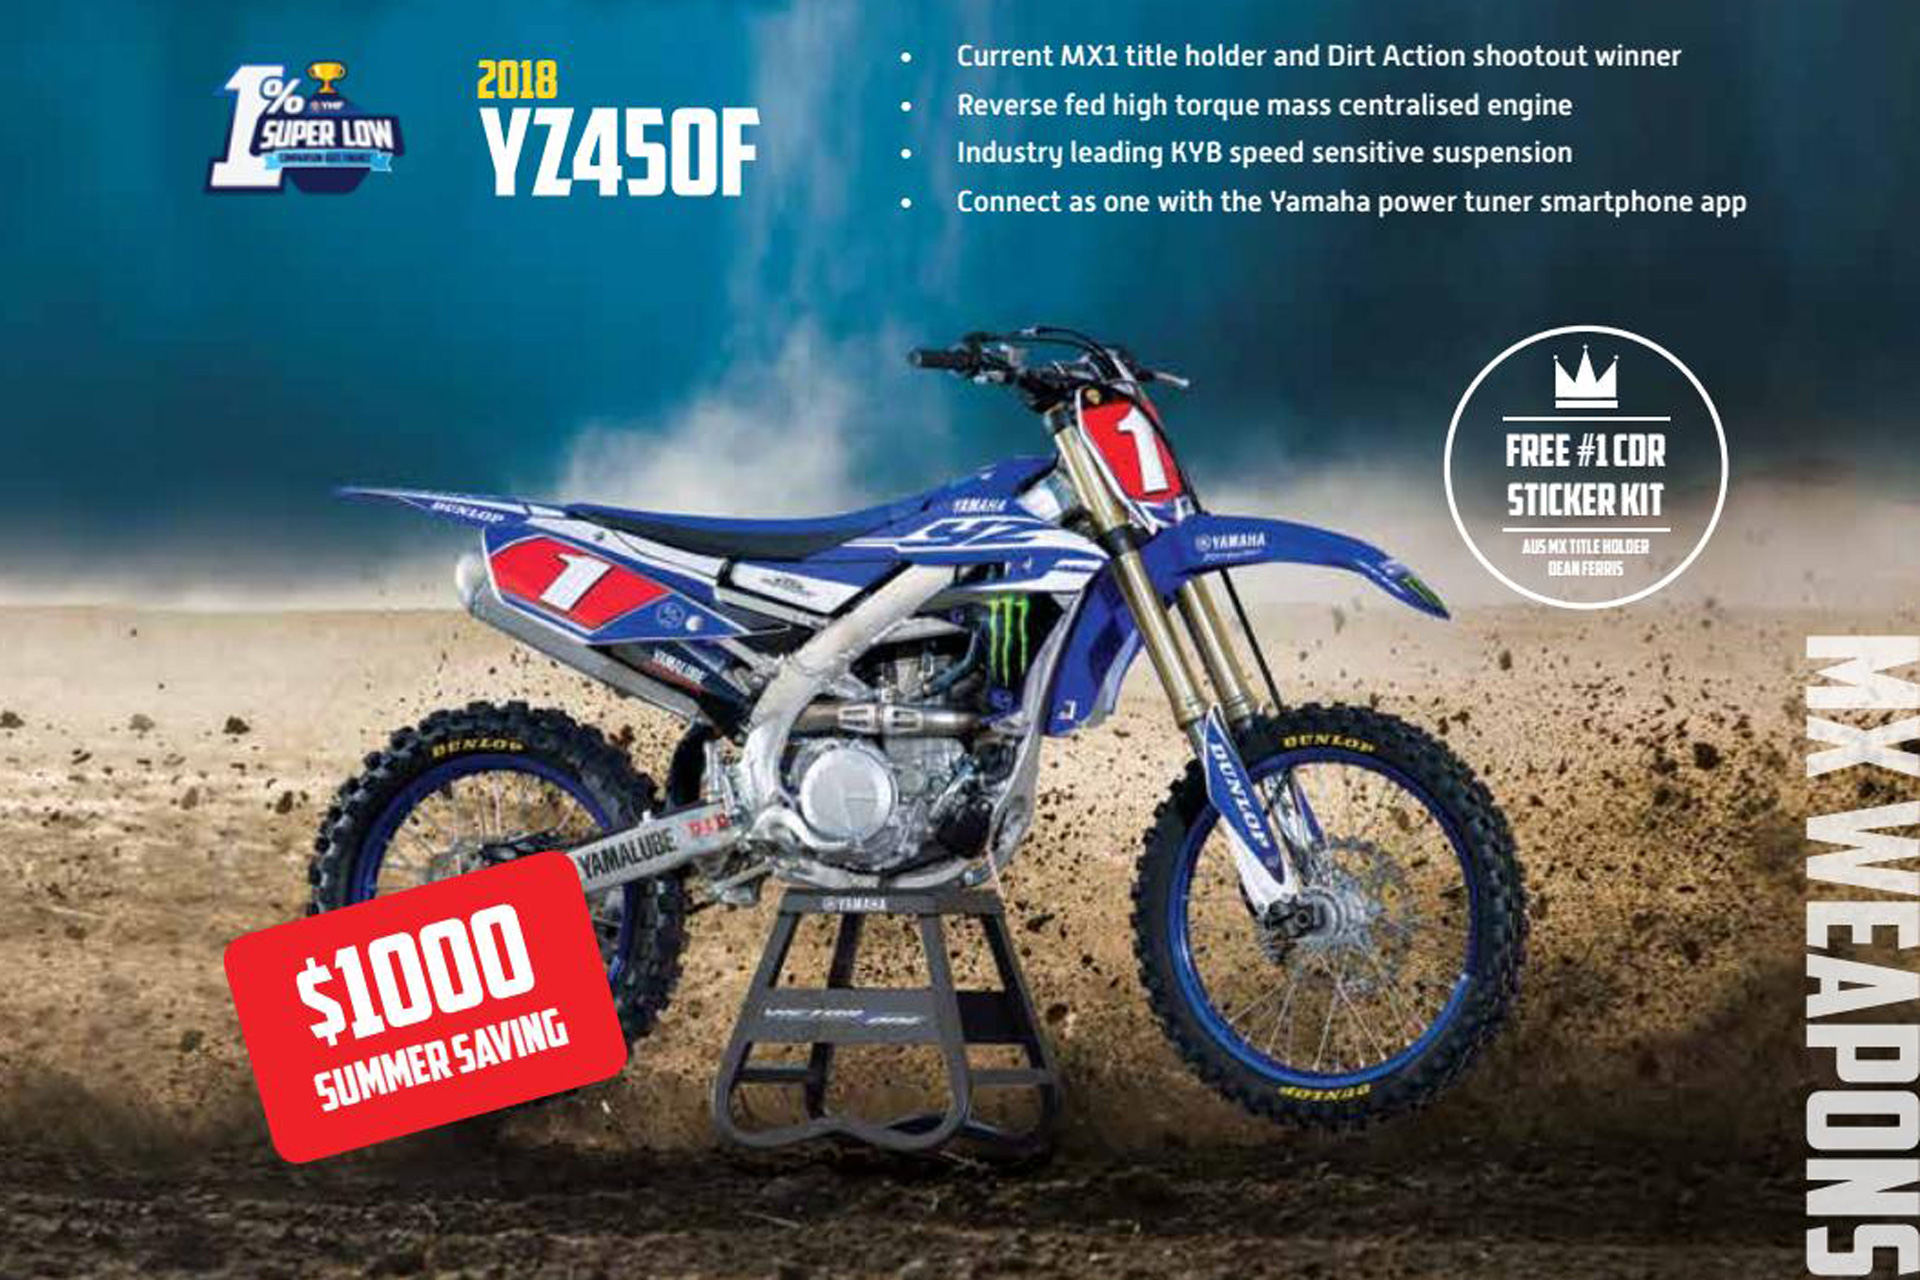 Great savings available on the 2018 YZ450F